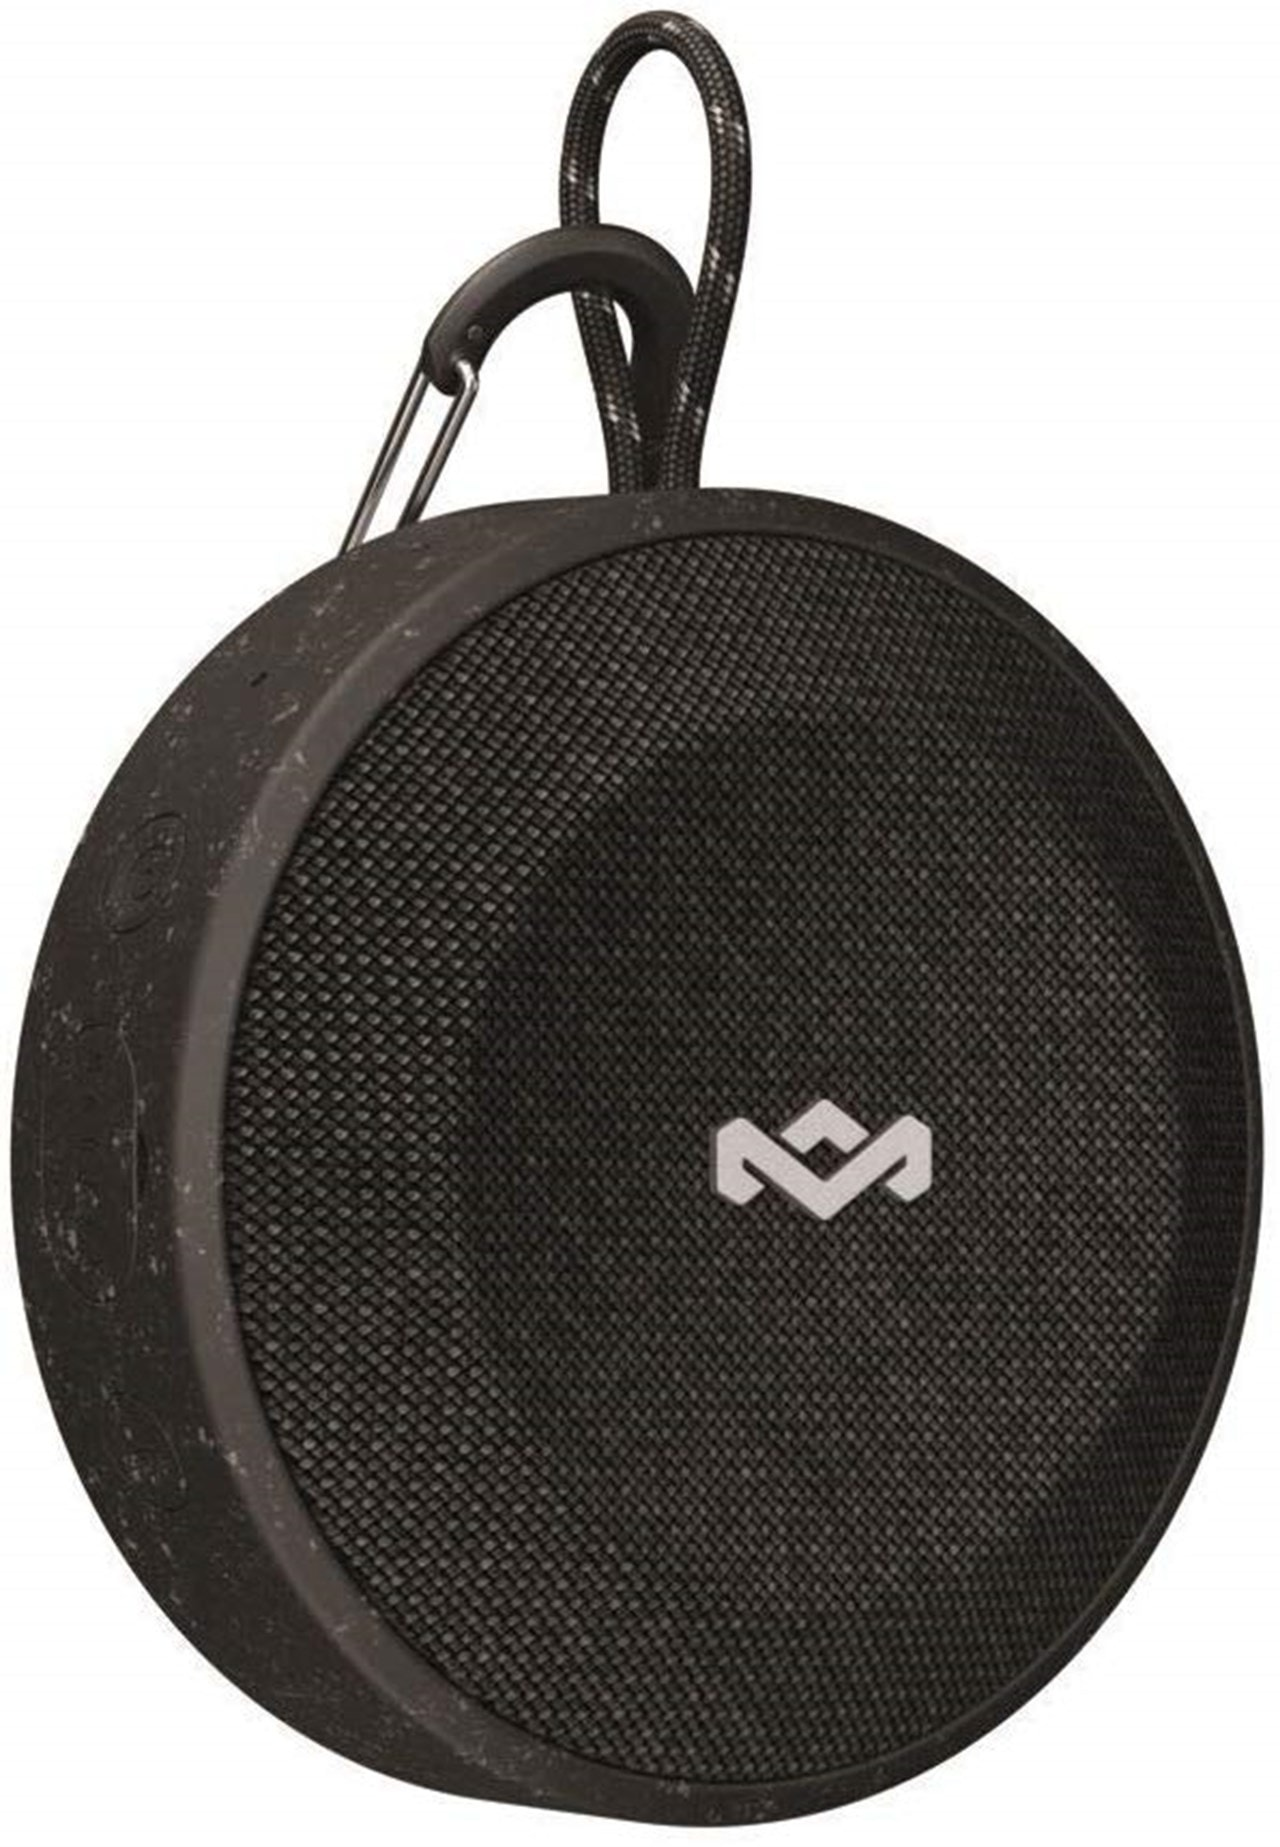 House Of Marley No Bounds Signature Black Bluetooth Speaker - 1